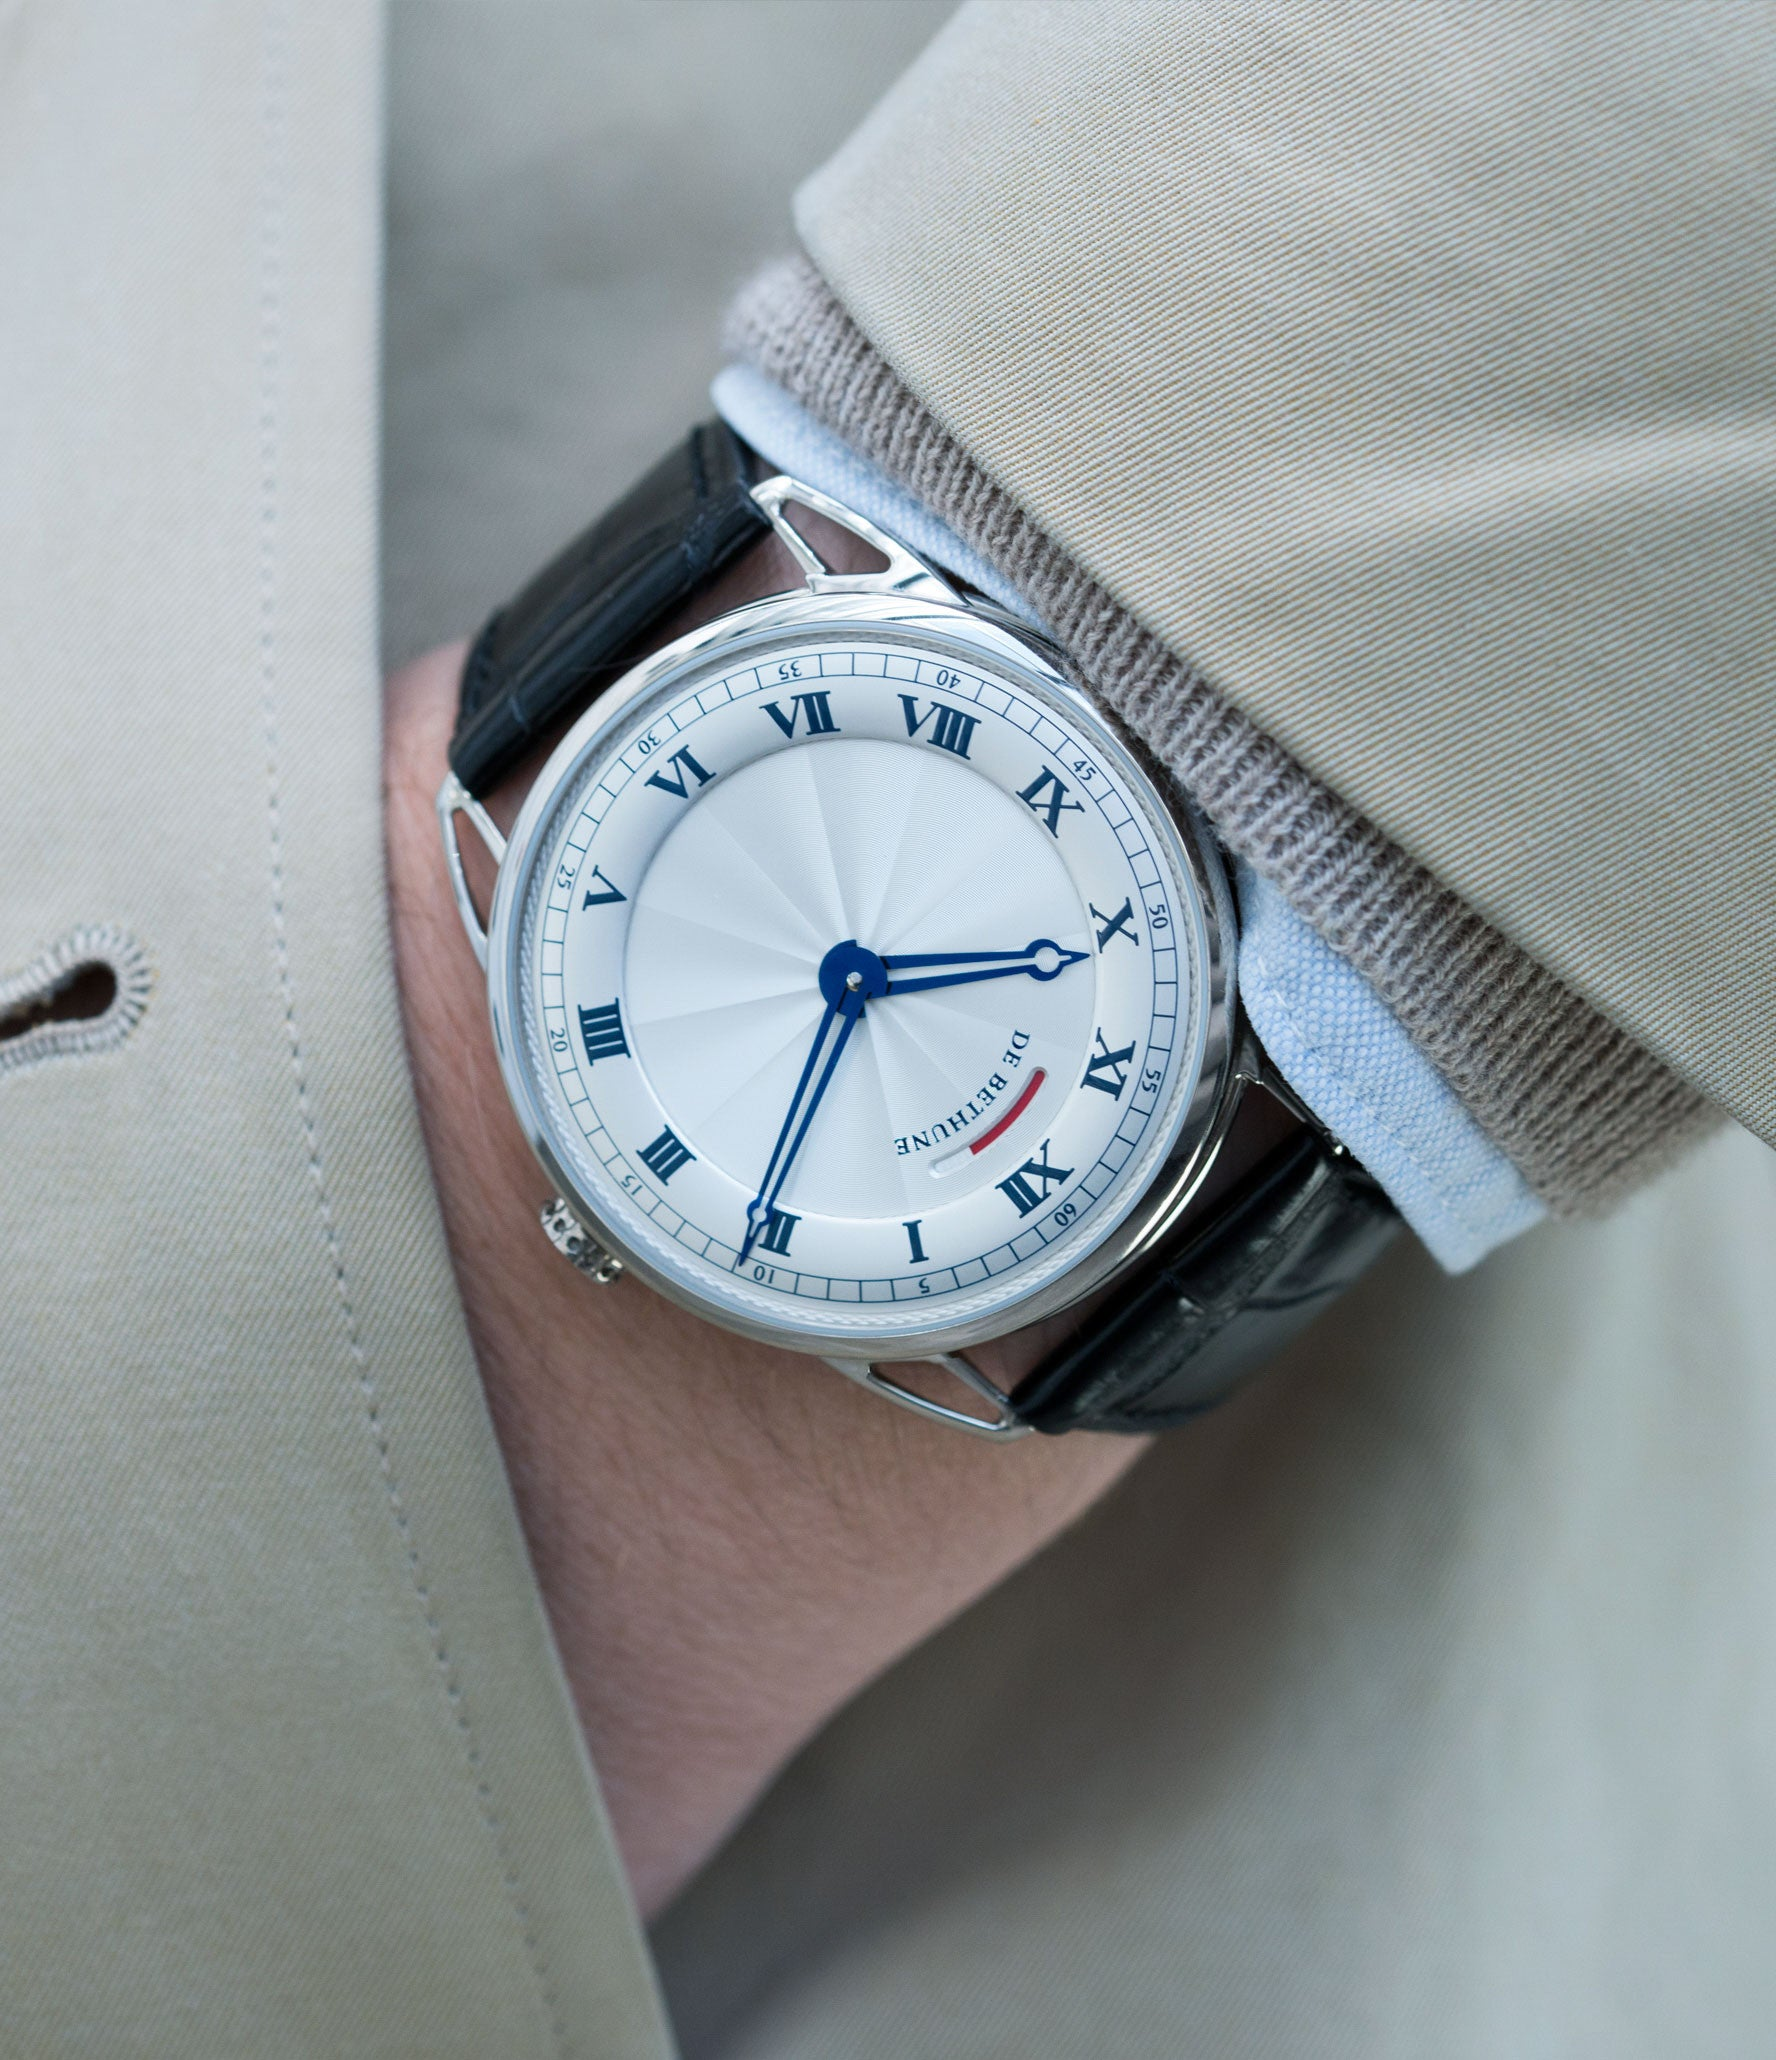 selling preowned luxury watch De Bethune DB25 white gold gentlemen's wristwatch for sale online at A Collected Man London approved reseller of independent watchmakers